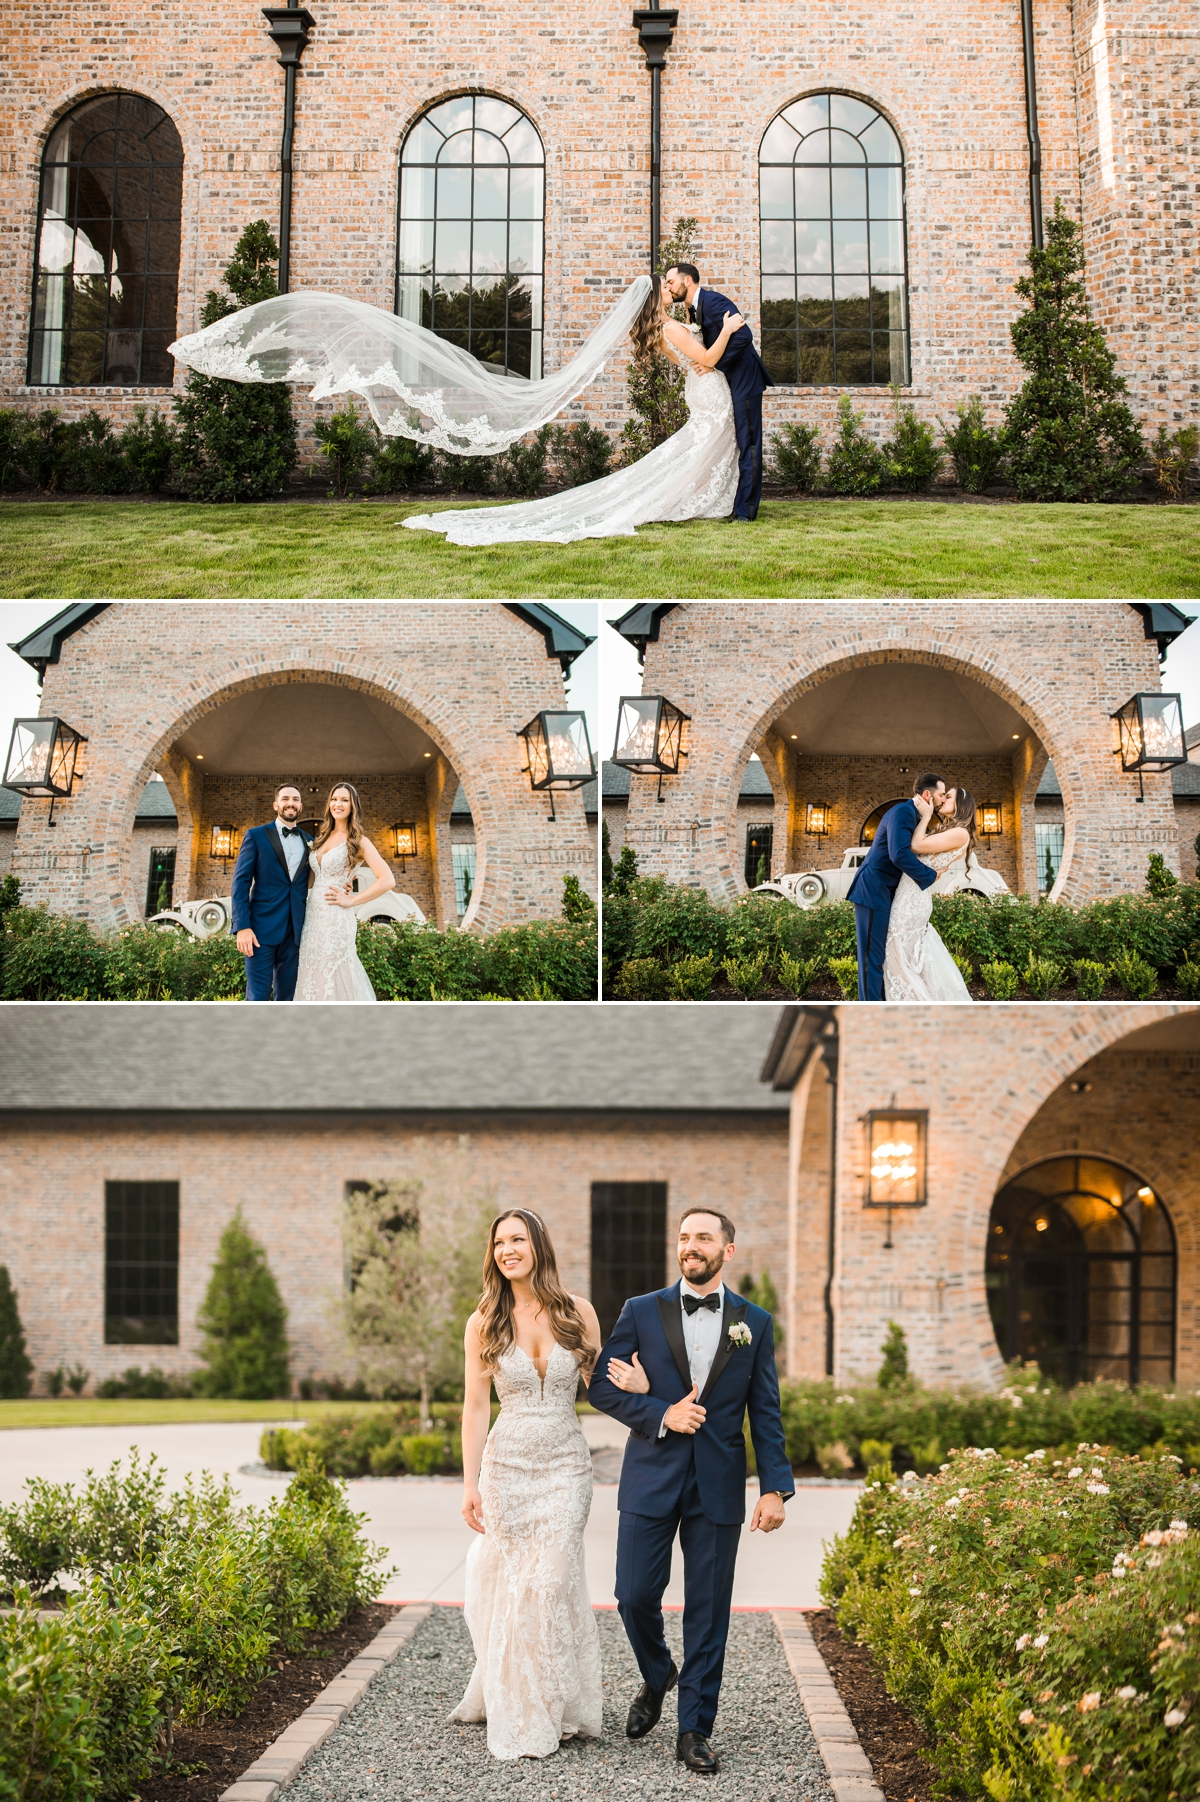 Bride and Groom Portraits outdoor at Iron Manor Wedding